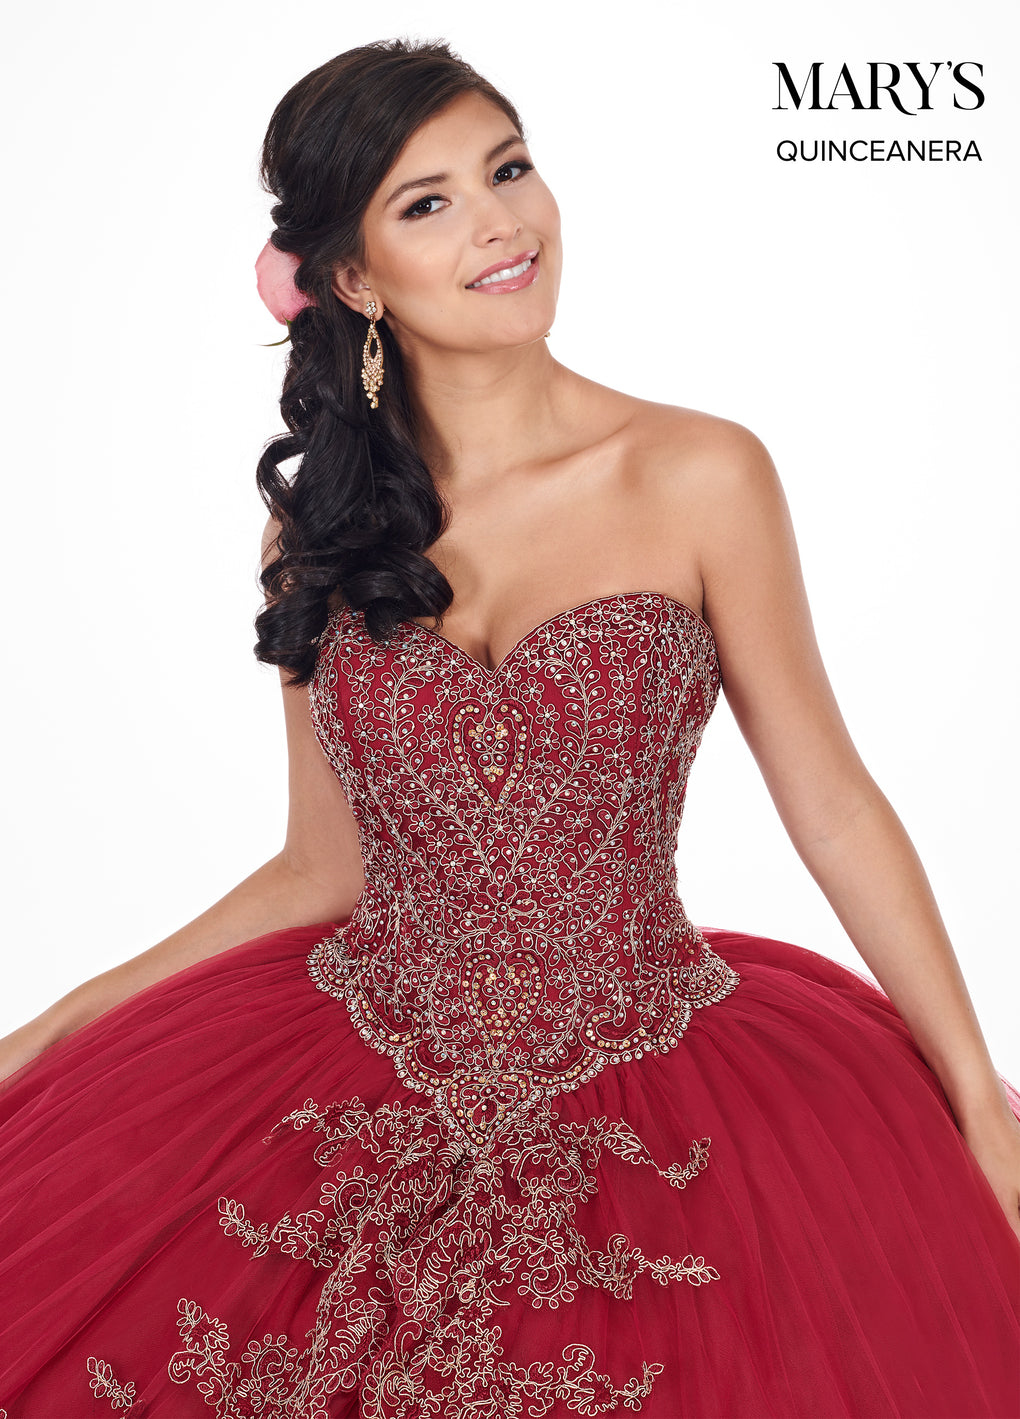 Marys Quinceanera Dresses in Burgundy/Gold, Midnight Blue/Gold, or Sky Blue/Gold Color